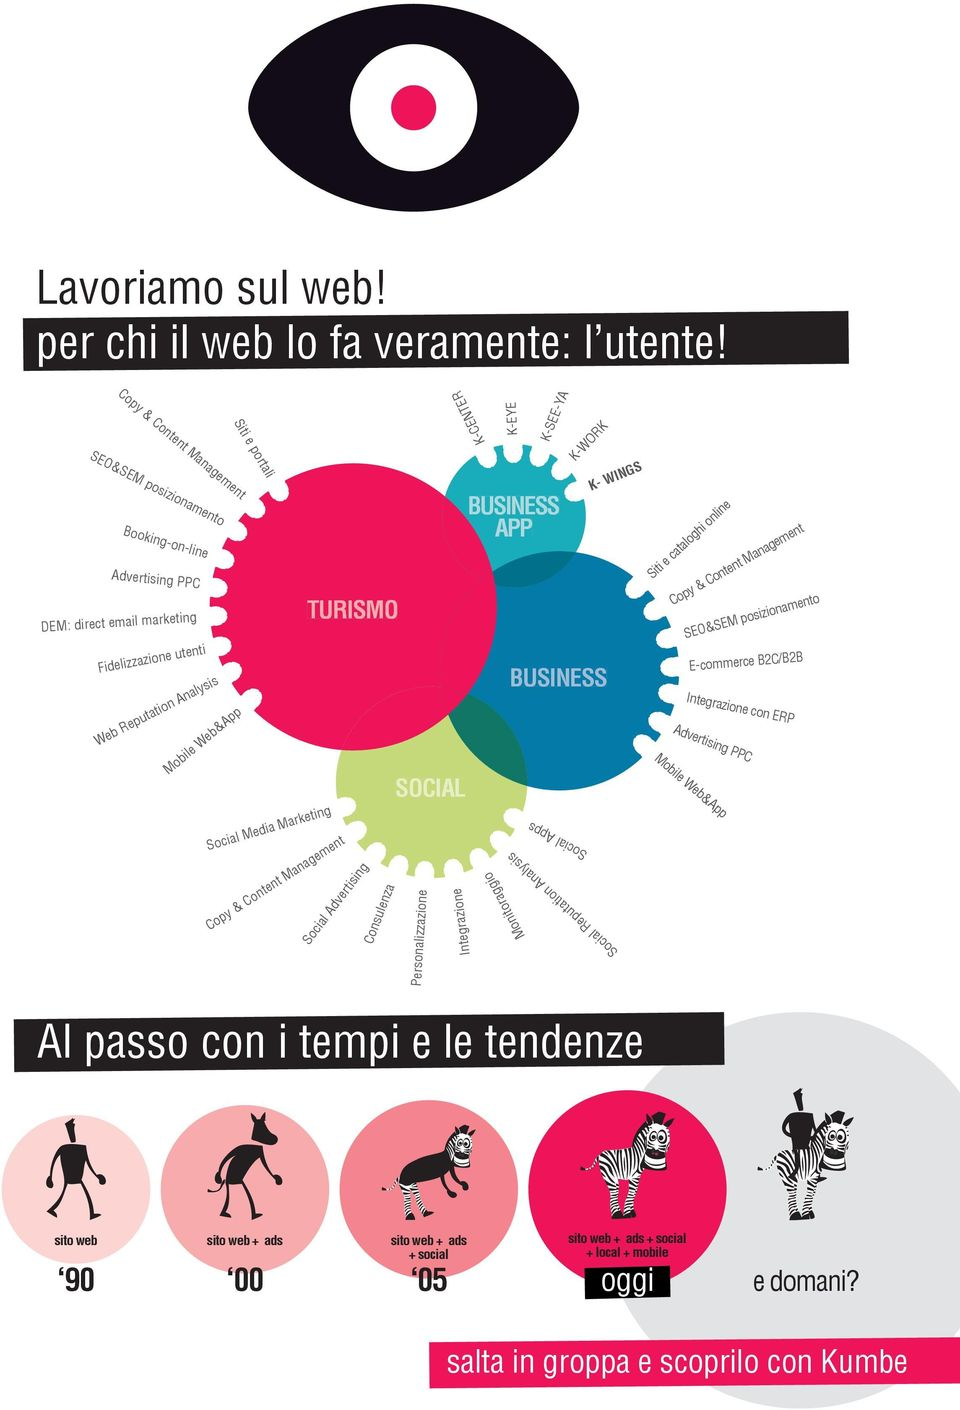 Marketing Copy & Content Management TURISMO Social Advertising Consulenza SOCIAL Personalizzazione K-CENTER Integrazione BUSINESS APP Monitoraggio K-EYE K-SEE-YA BUSINESS Social Apps K-WORK Social